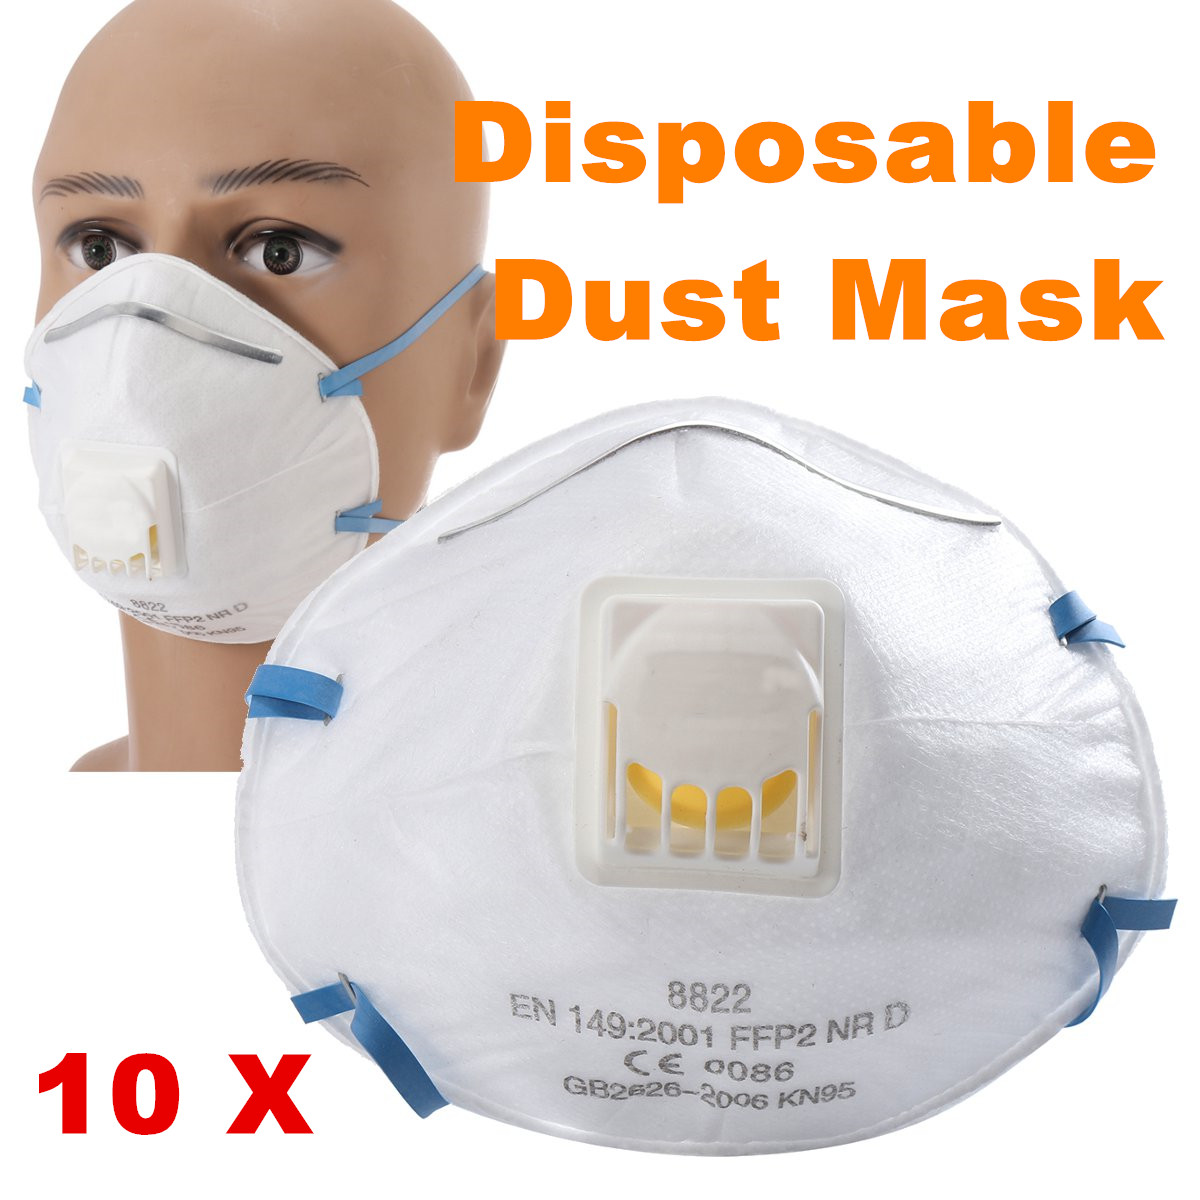 10pcs disposable ffp2 comfort valved dust mask pm2.5 ...